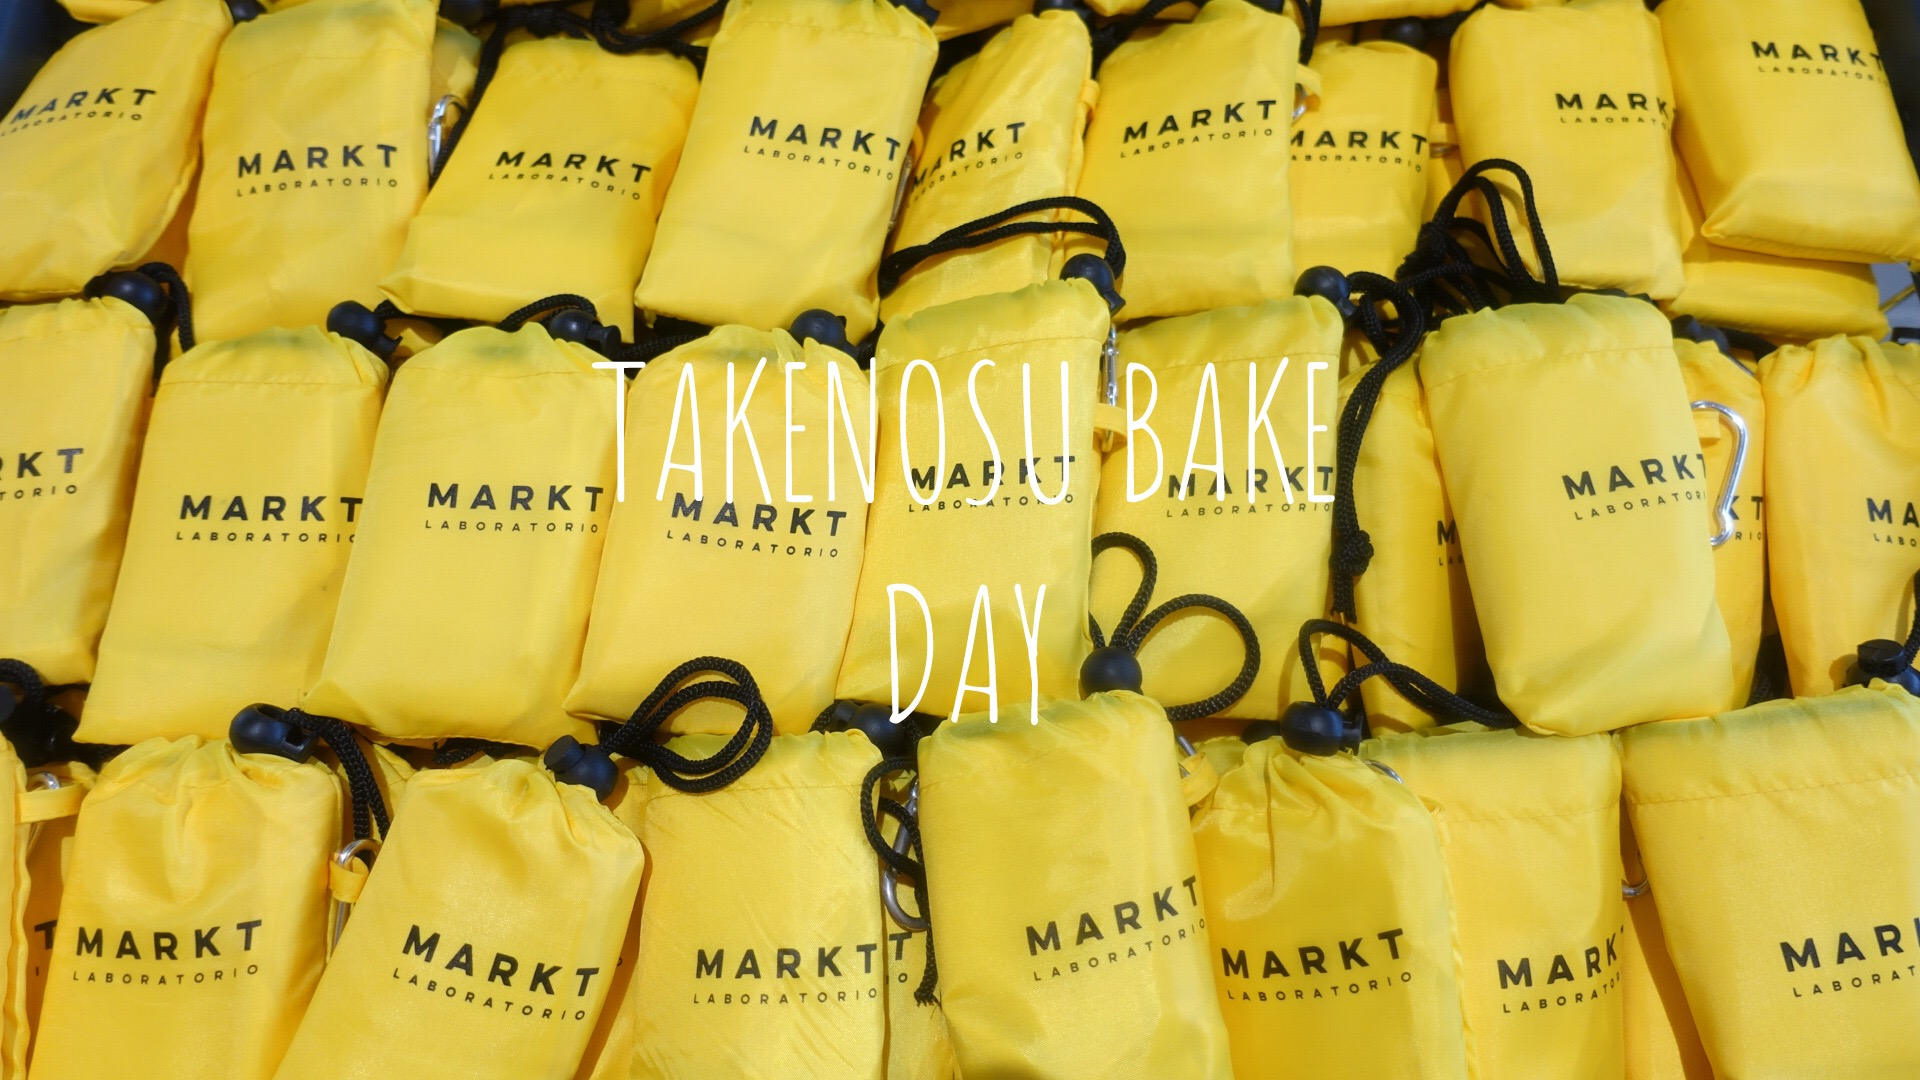 TAKENOSU BAKE マルクと